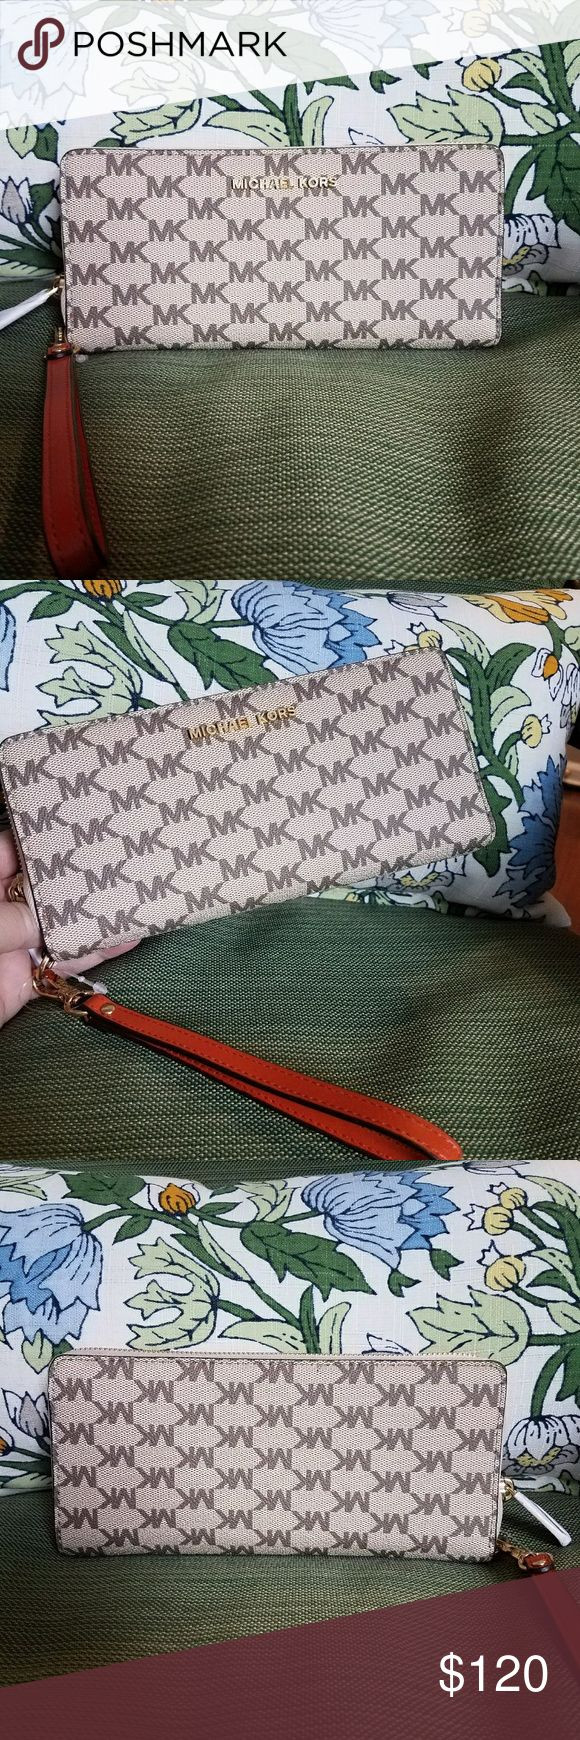 Nwt Michael Kors Jet Set Travel Continental large Nwt Michael Kors Jet Set Travel Continental large wallet in tan signature print and orange wrist strap and interior. Comes with all original packaging as pictured. Michael Kors Bags Wallets